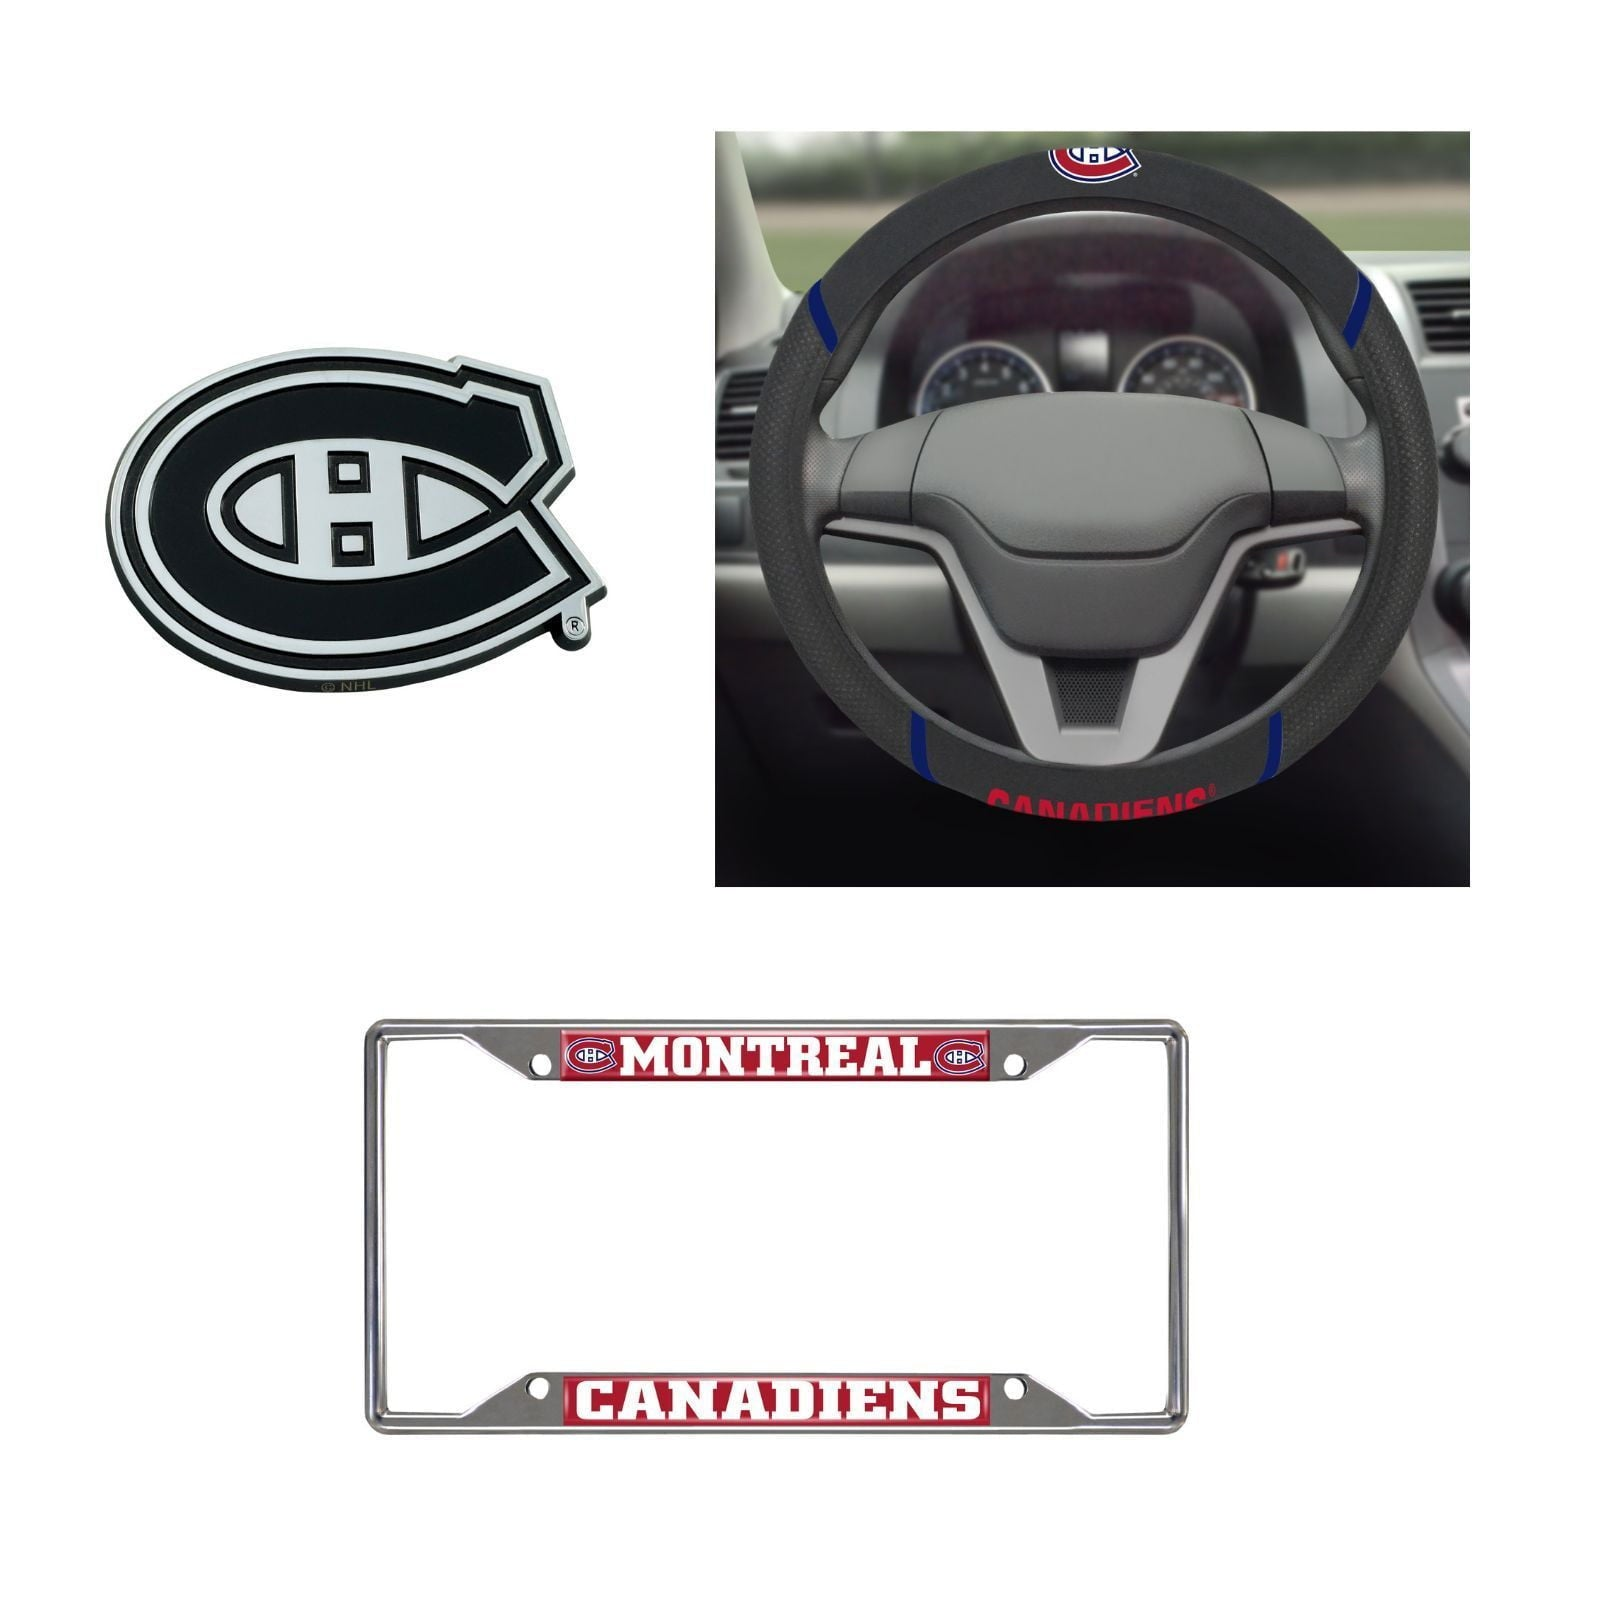 Montreal Canadiens Steering Wheel Cover, License Plate Frame, 3D Chrome Emblem